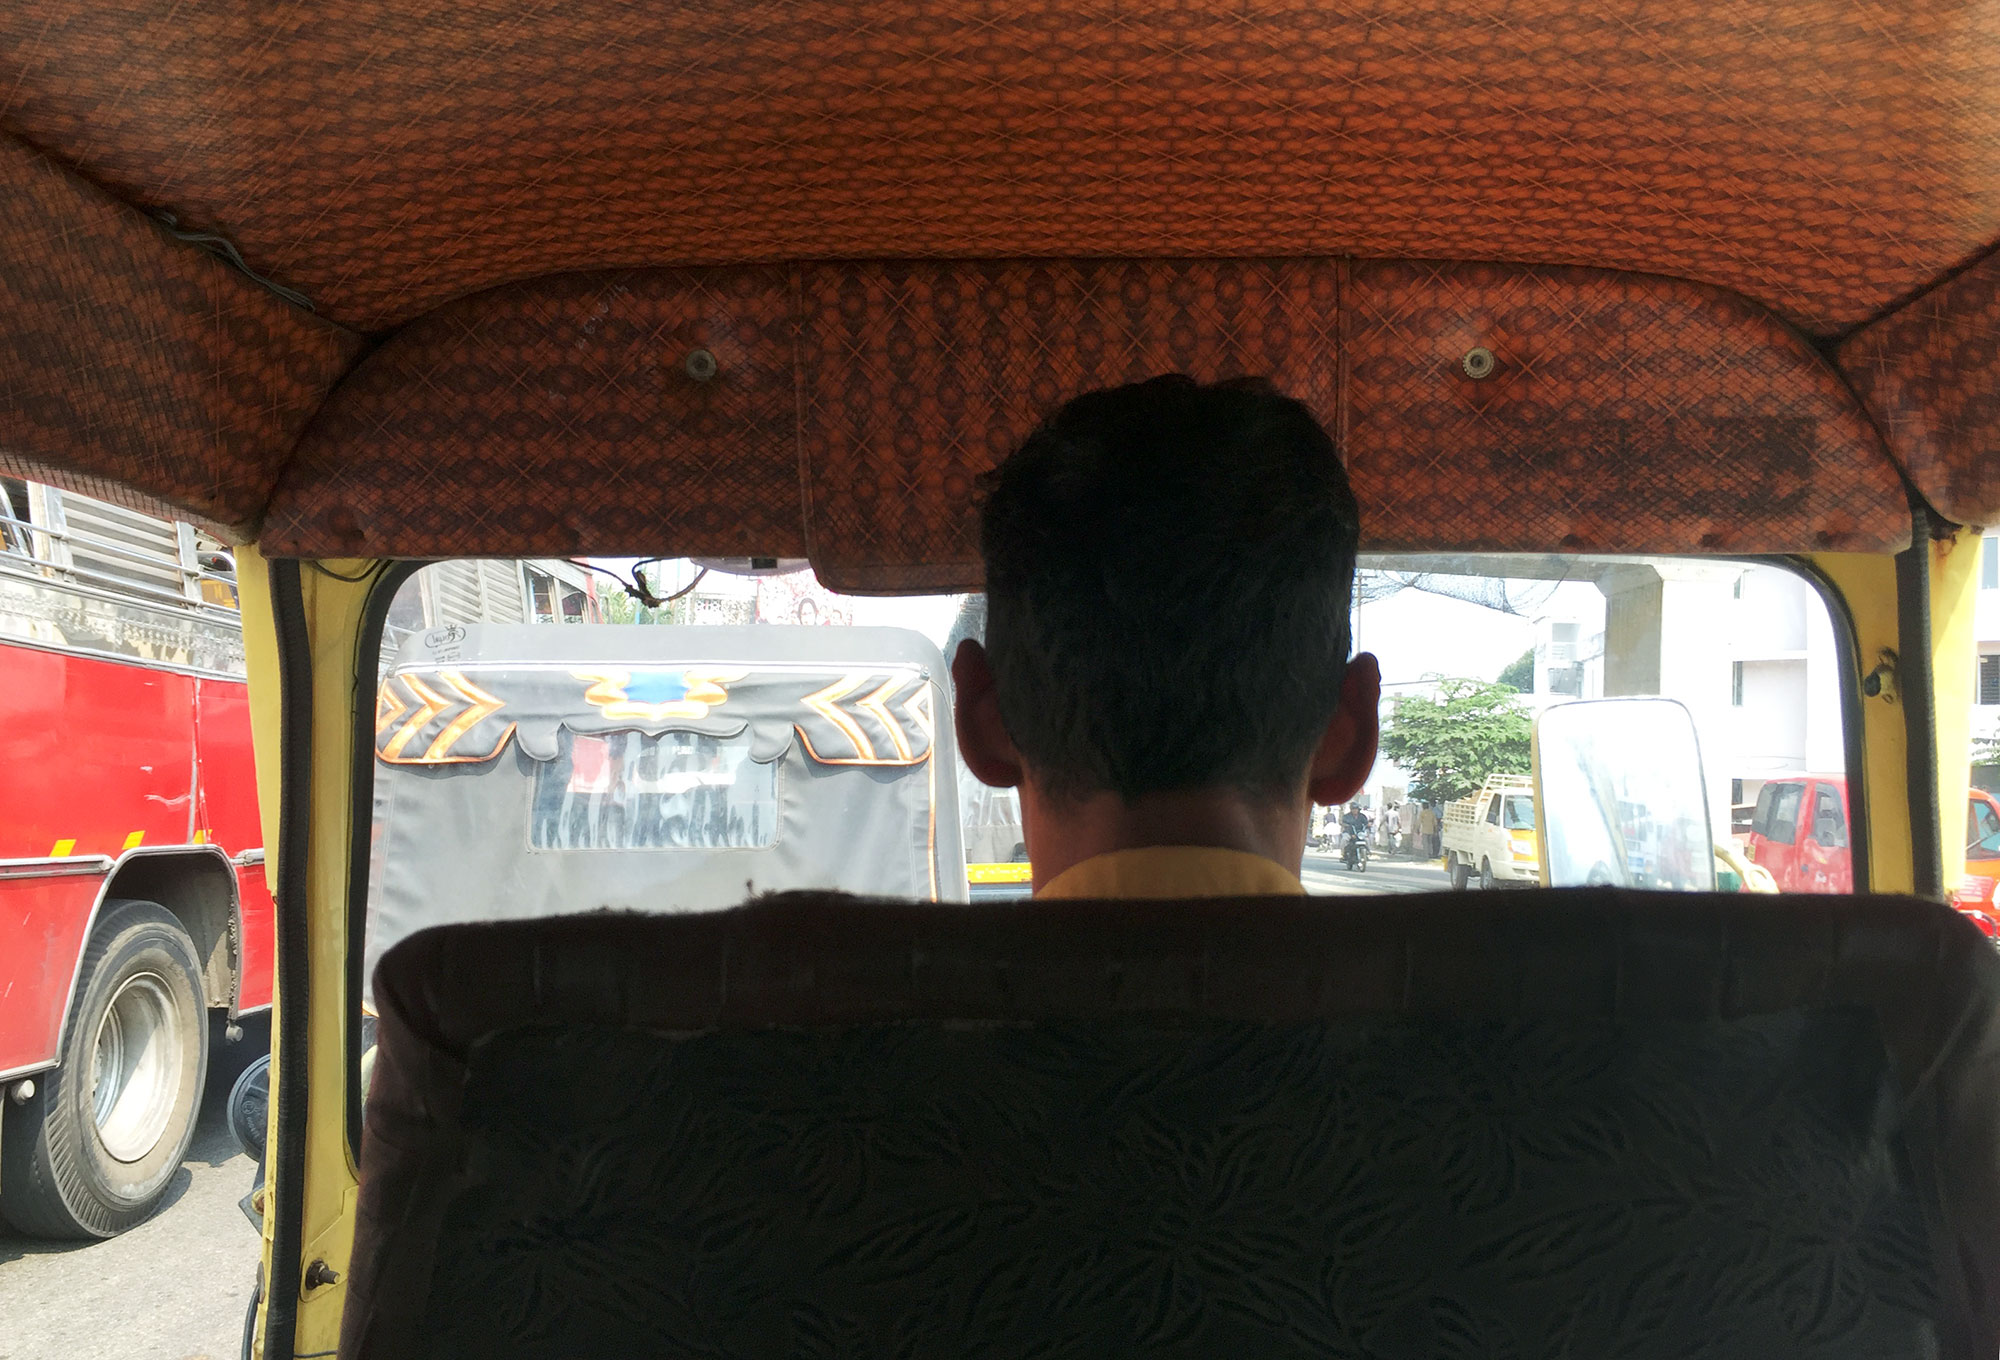 Tuk tuk and driver.  On the way to the Lulu Mall.